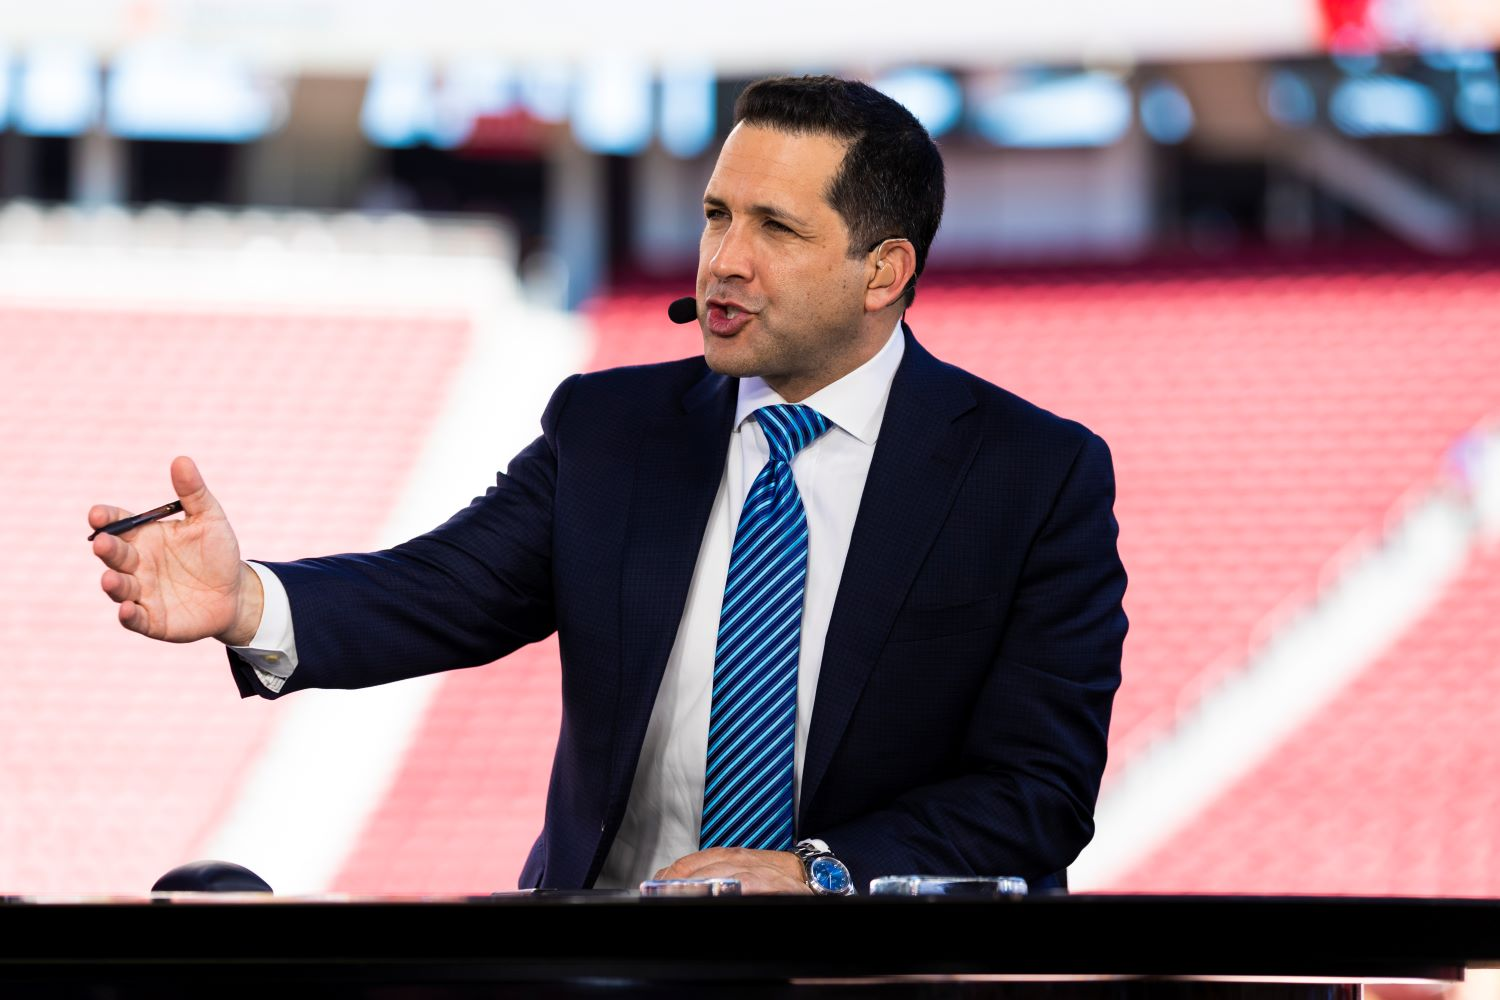 With so many NFL quarterbacks facing uncertain futures, Adam Schefter delivered a stunning prediction about how many QBs will change teams.